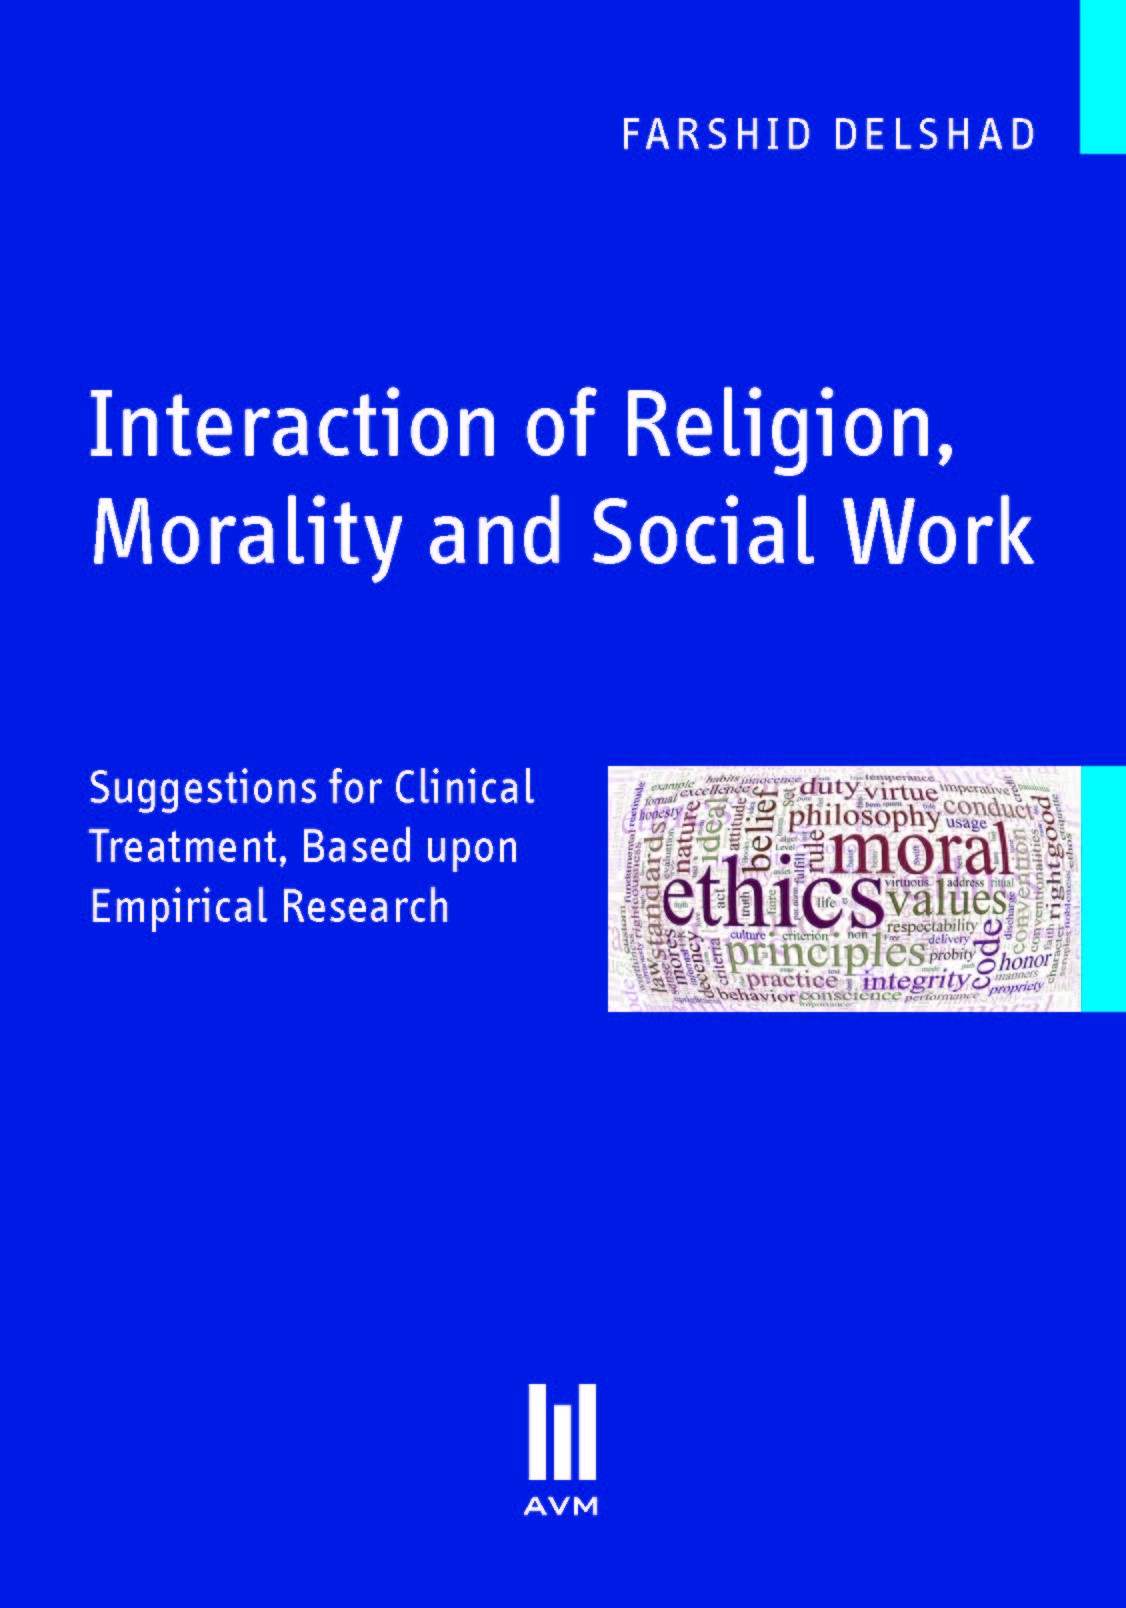 Interaction of Religion, Morality and Social Work | Delshad, 2010 (Cover)